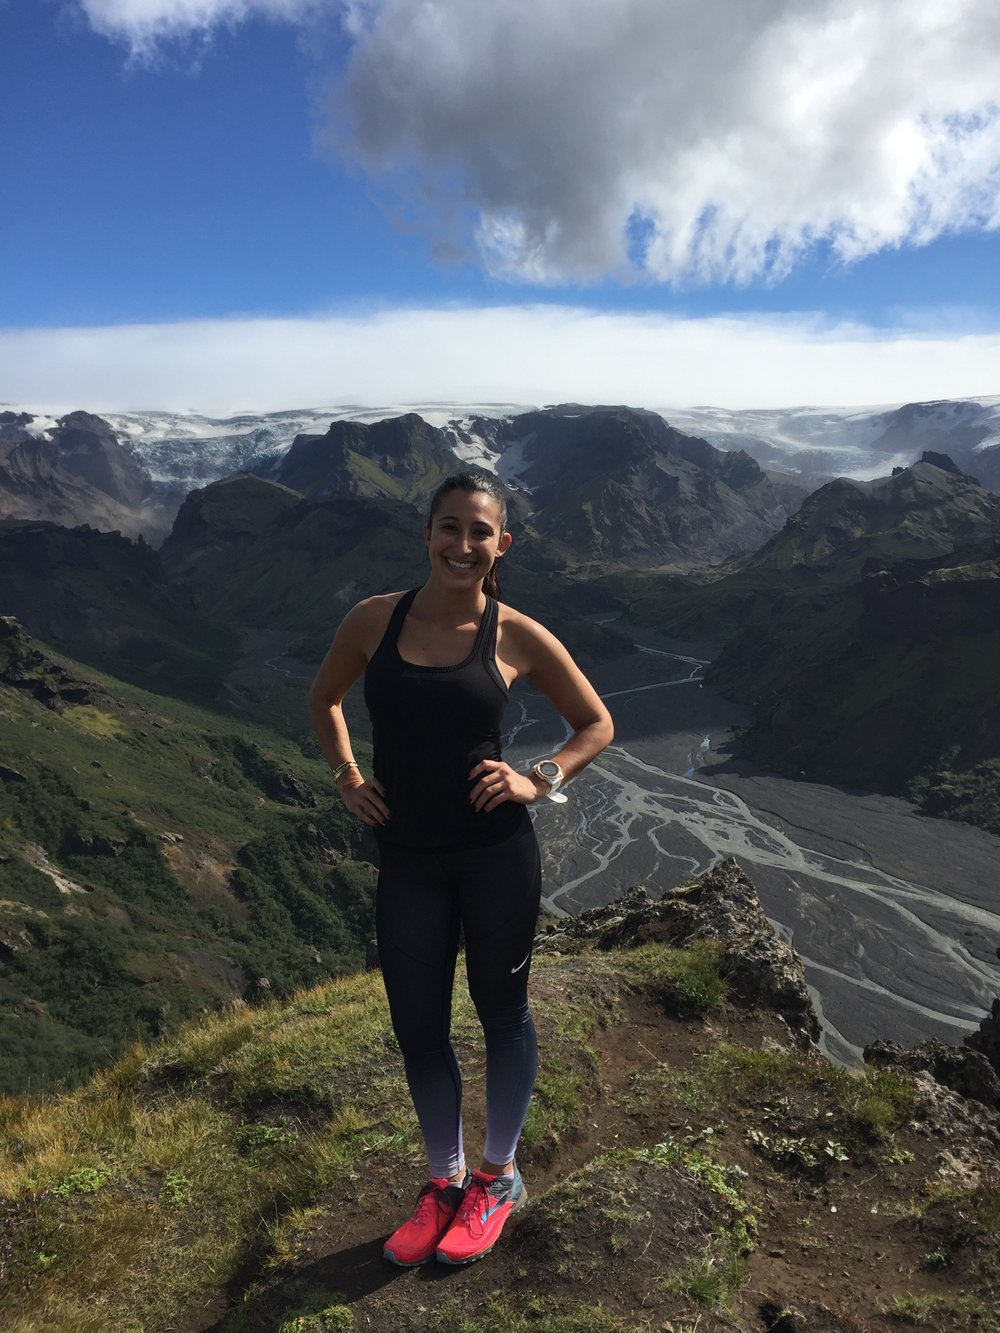 Eliza | Feed the Dietitian | Nutrition Fitness and Fashion for the Millennial | How to Travel and Stay Active - Iceland Adventures 2016